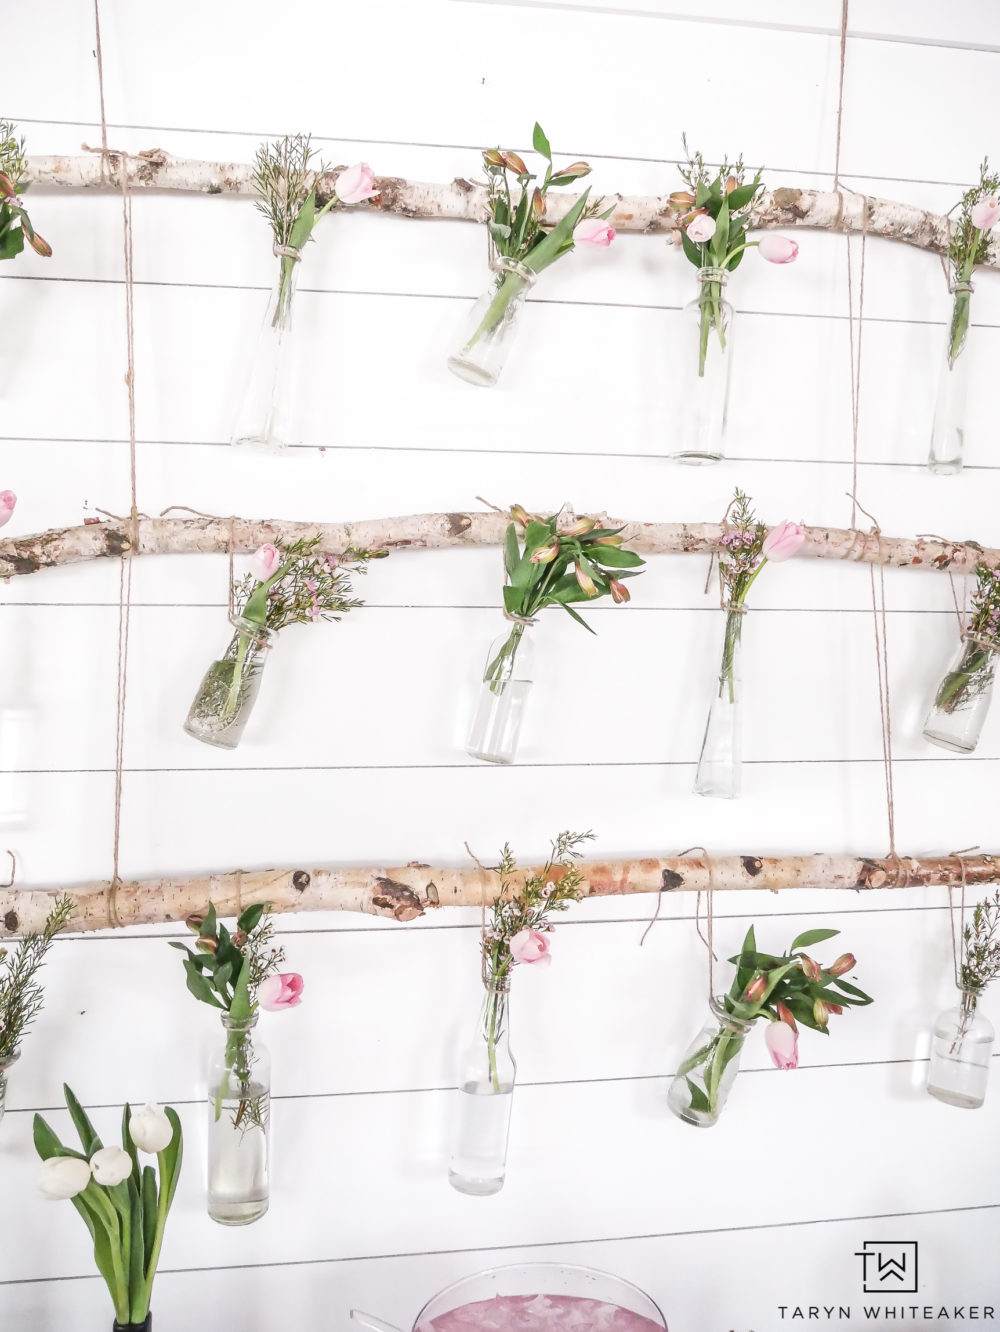 Create this hanging branch floral display using birch branches and fresh garden flowers with pops of pink!